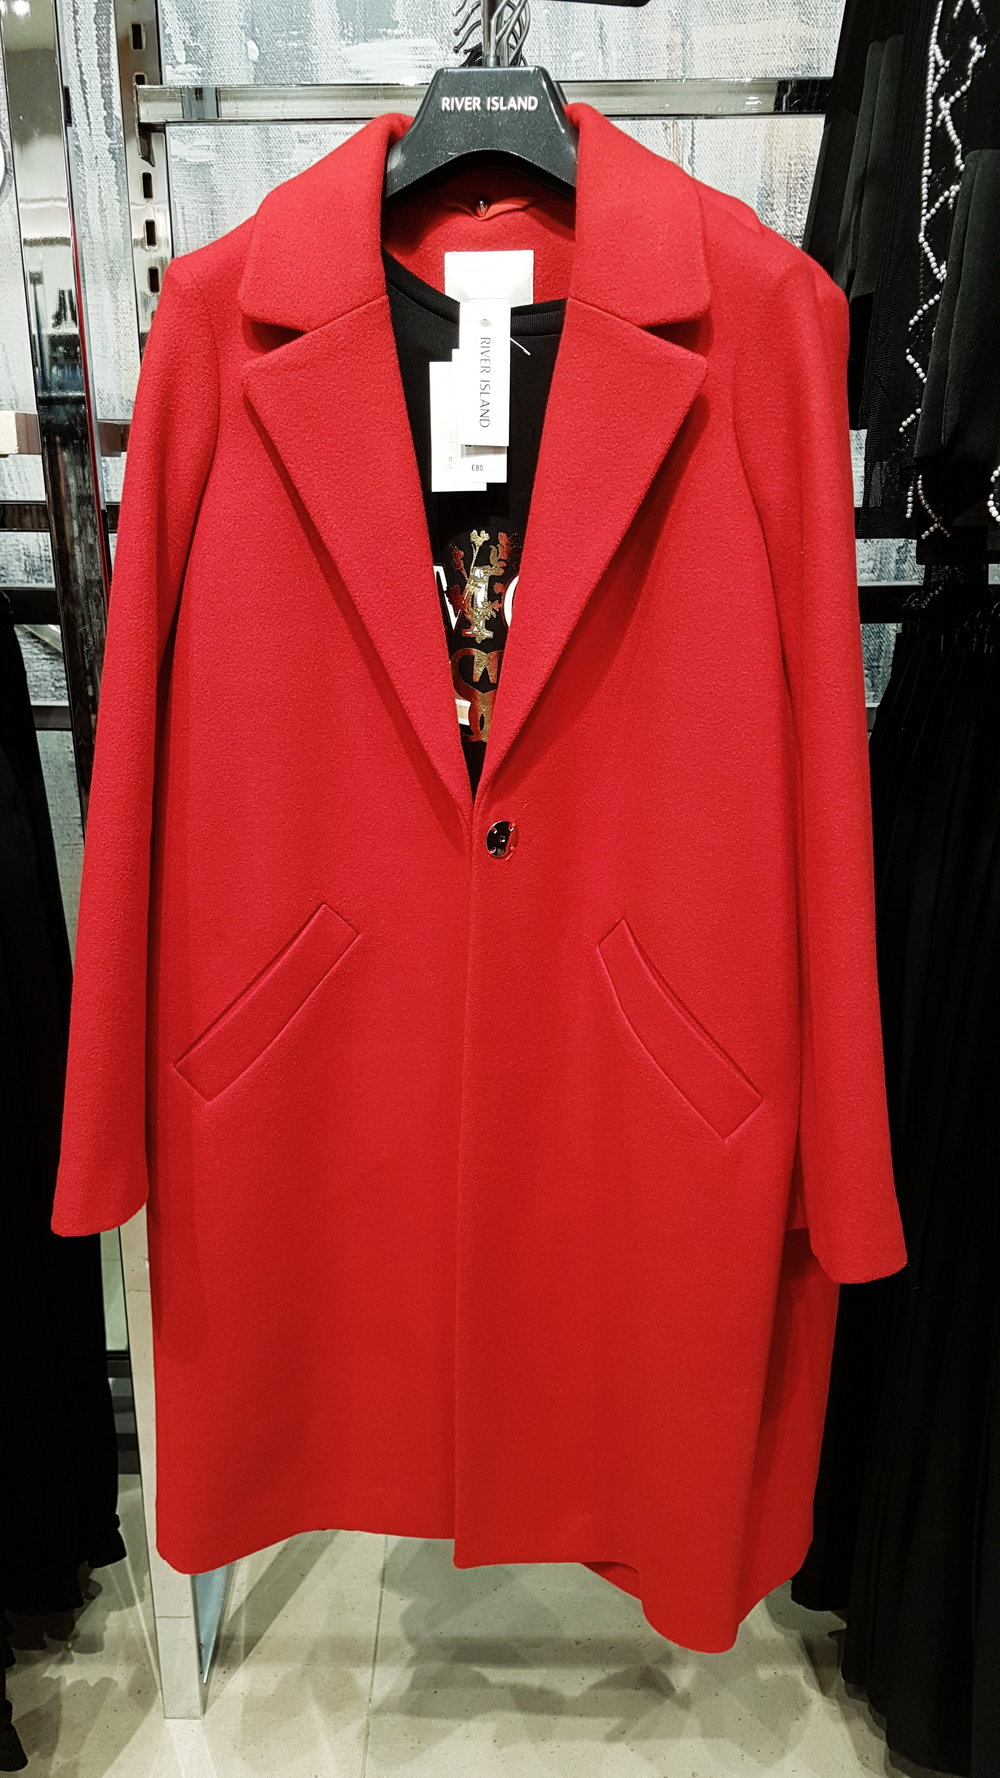 Sian-victoria-river-island-red-coat-fashion-blog.jpg